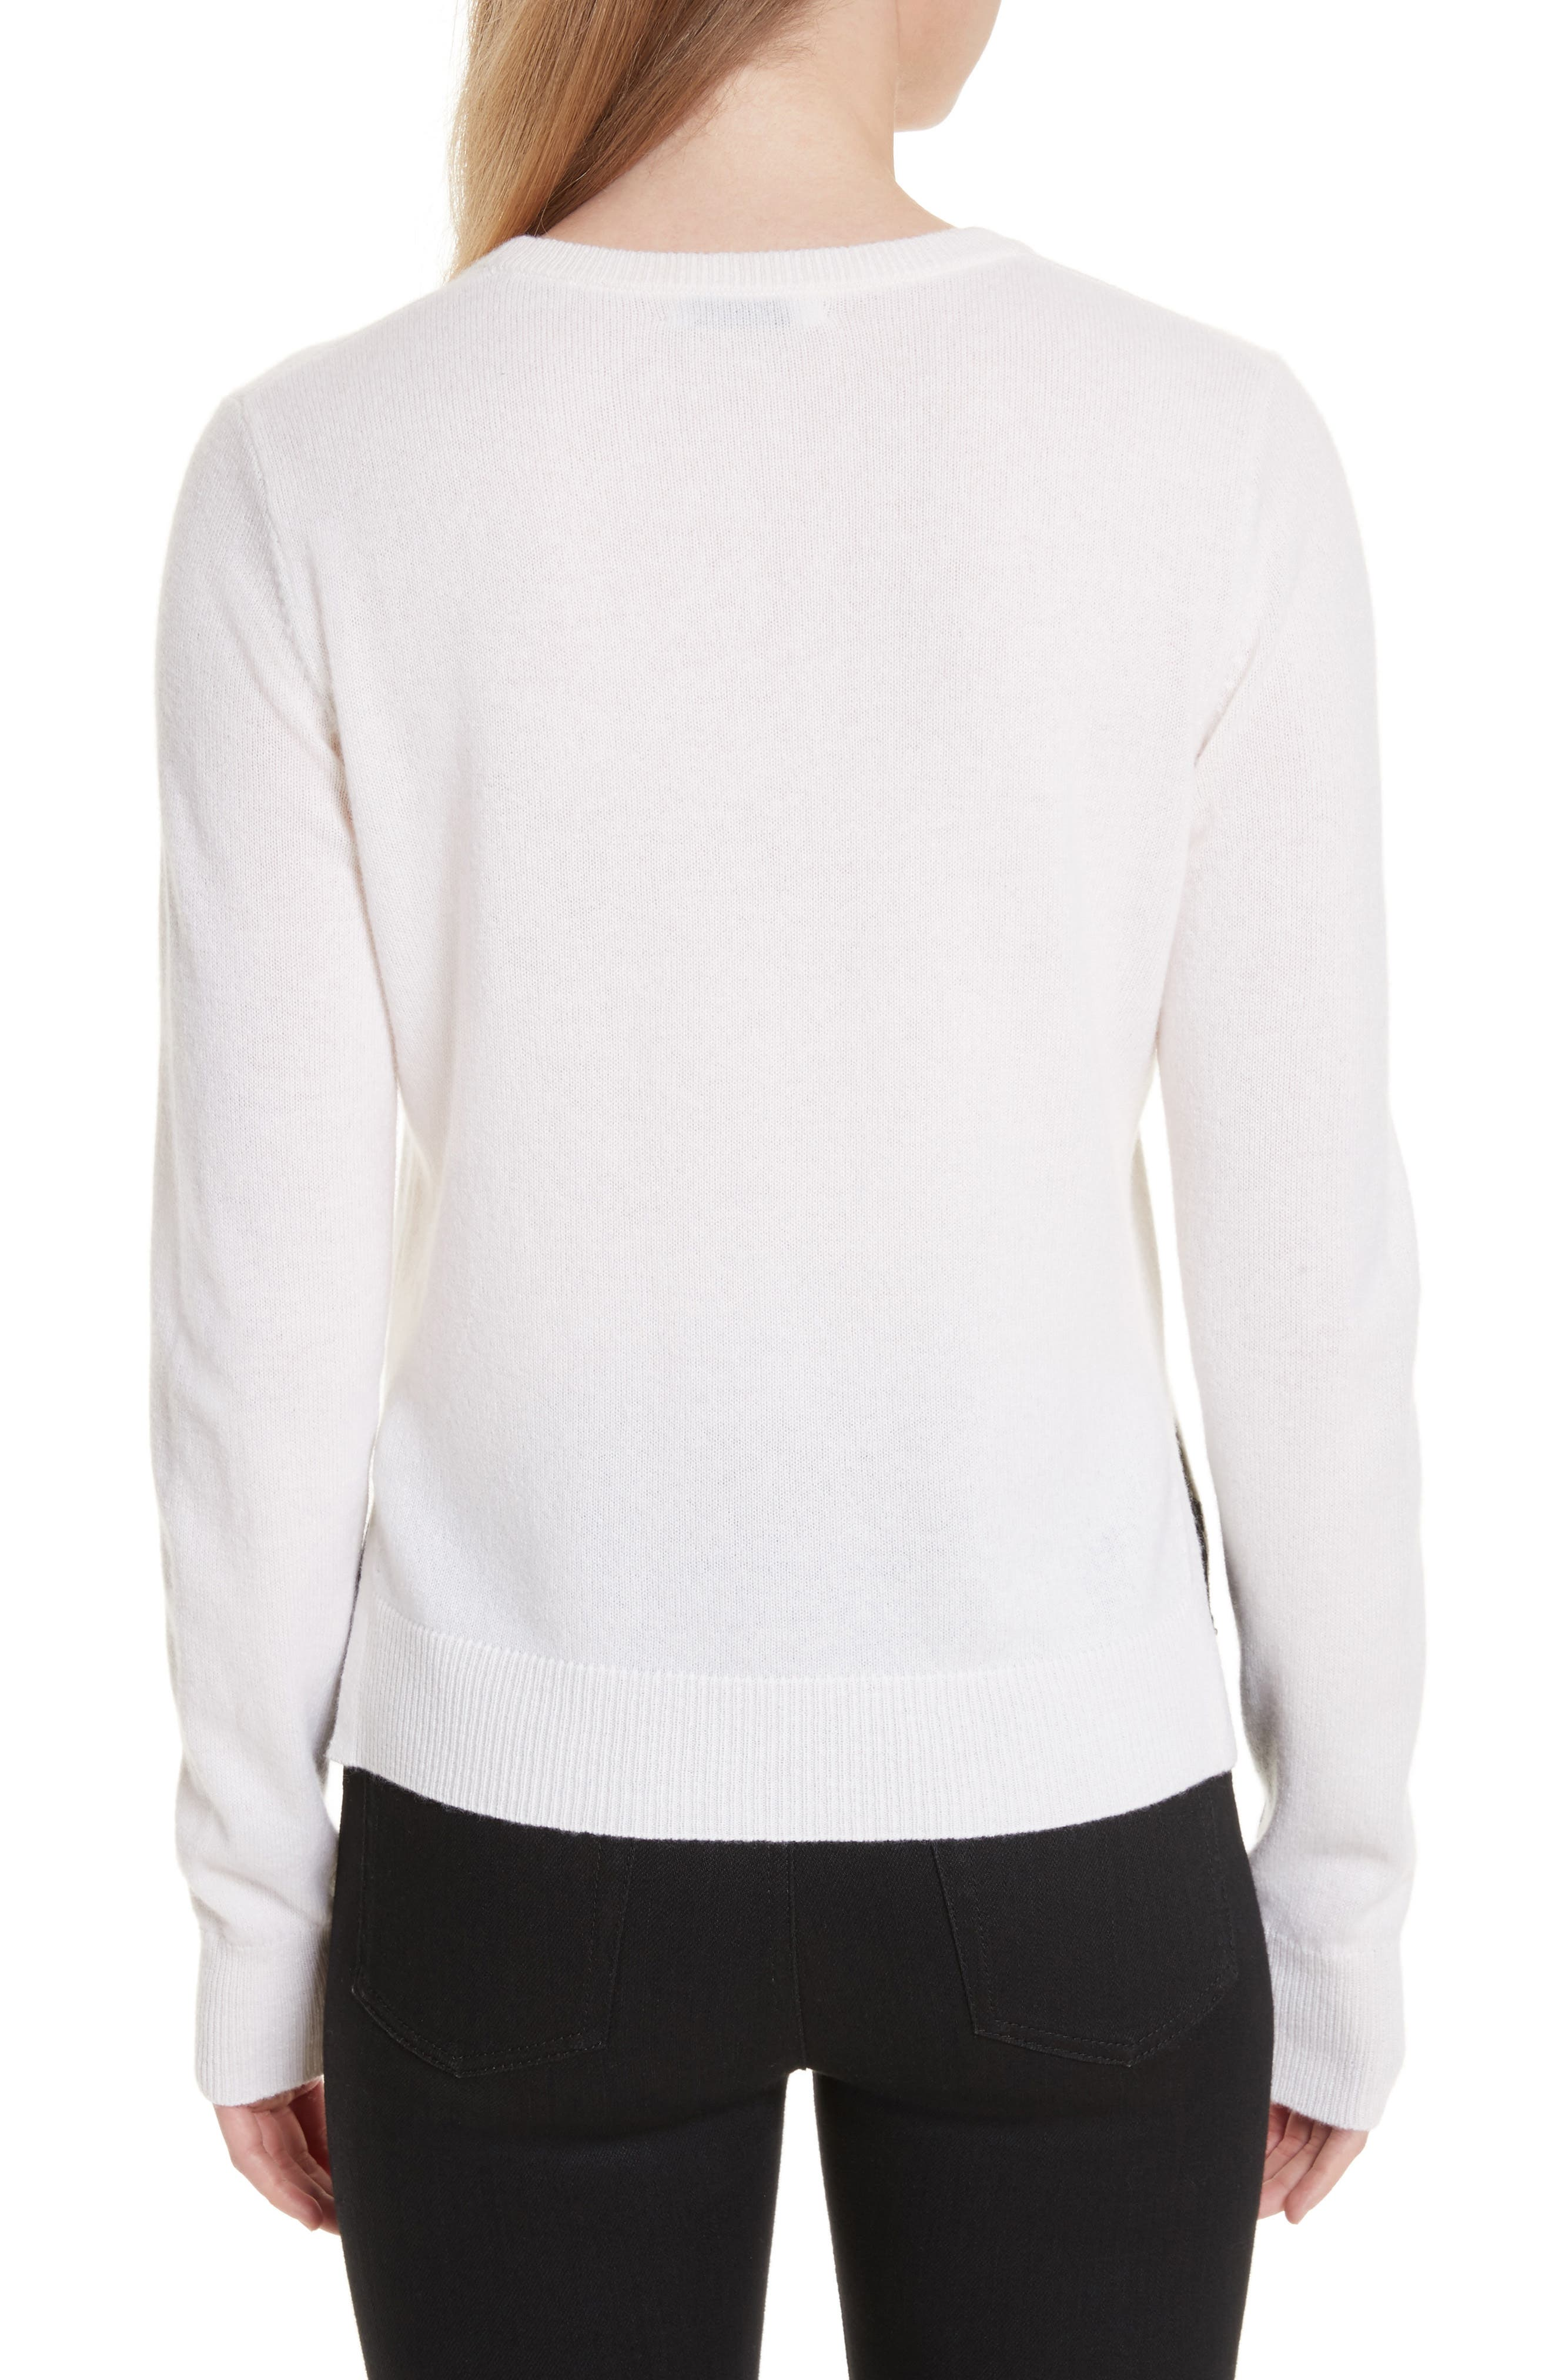 Shirley Cashmere Sweater,                             Alternate thumbnail 2, color,                             Ivory/ Black